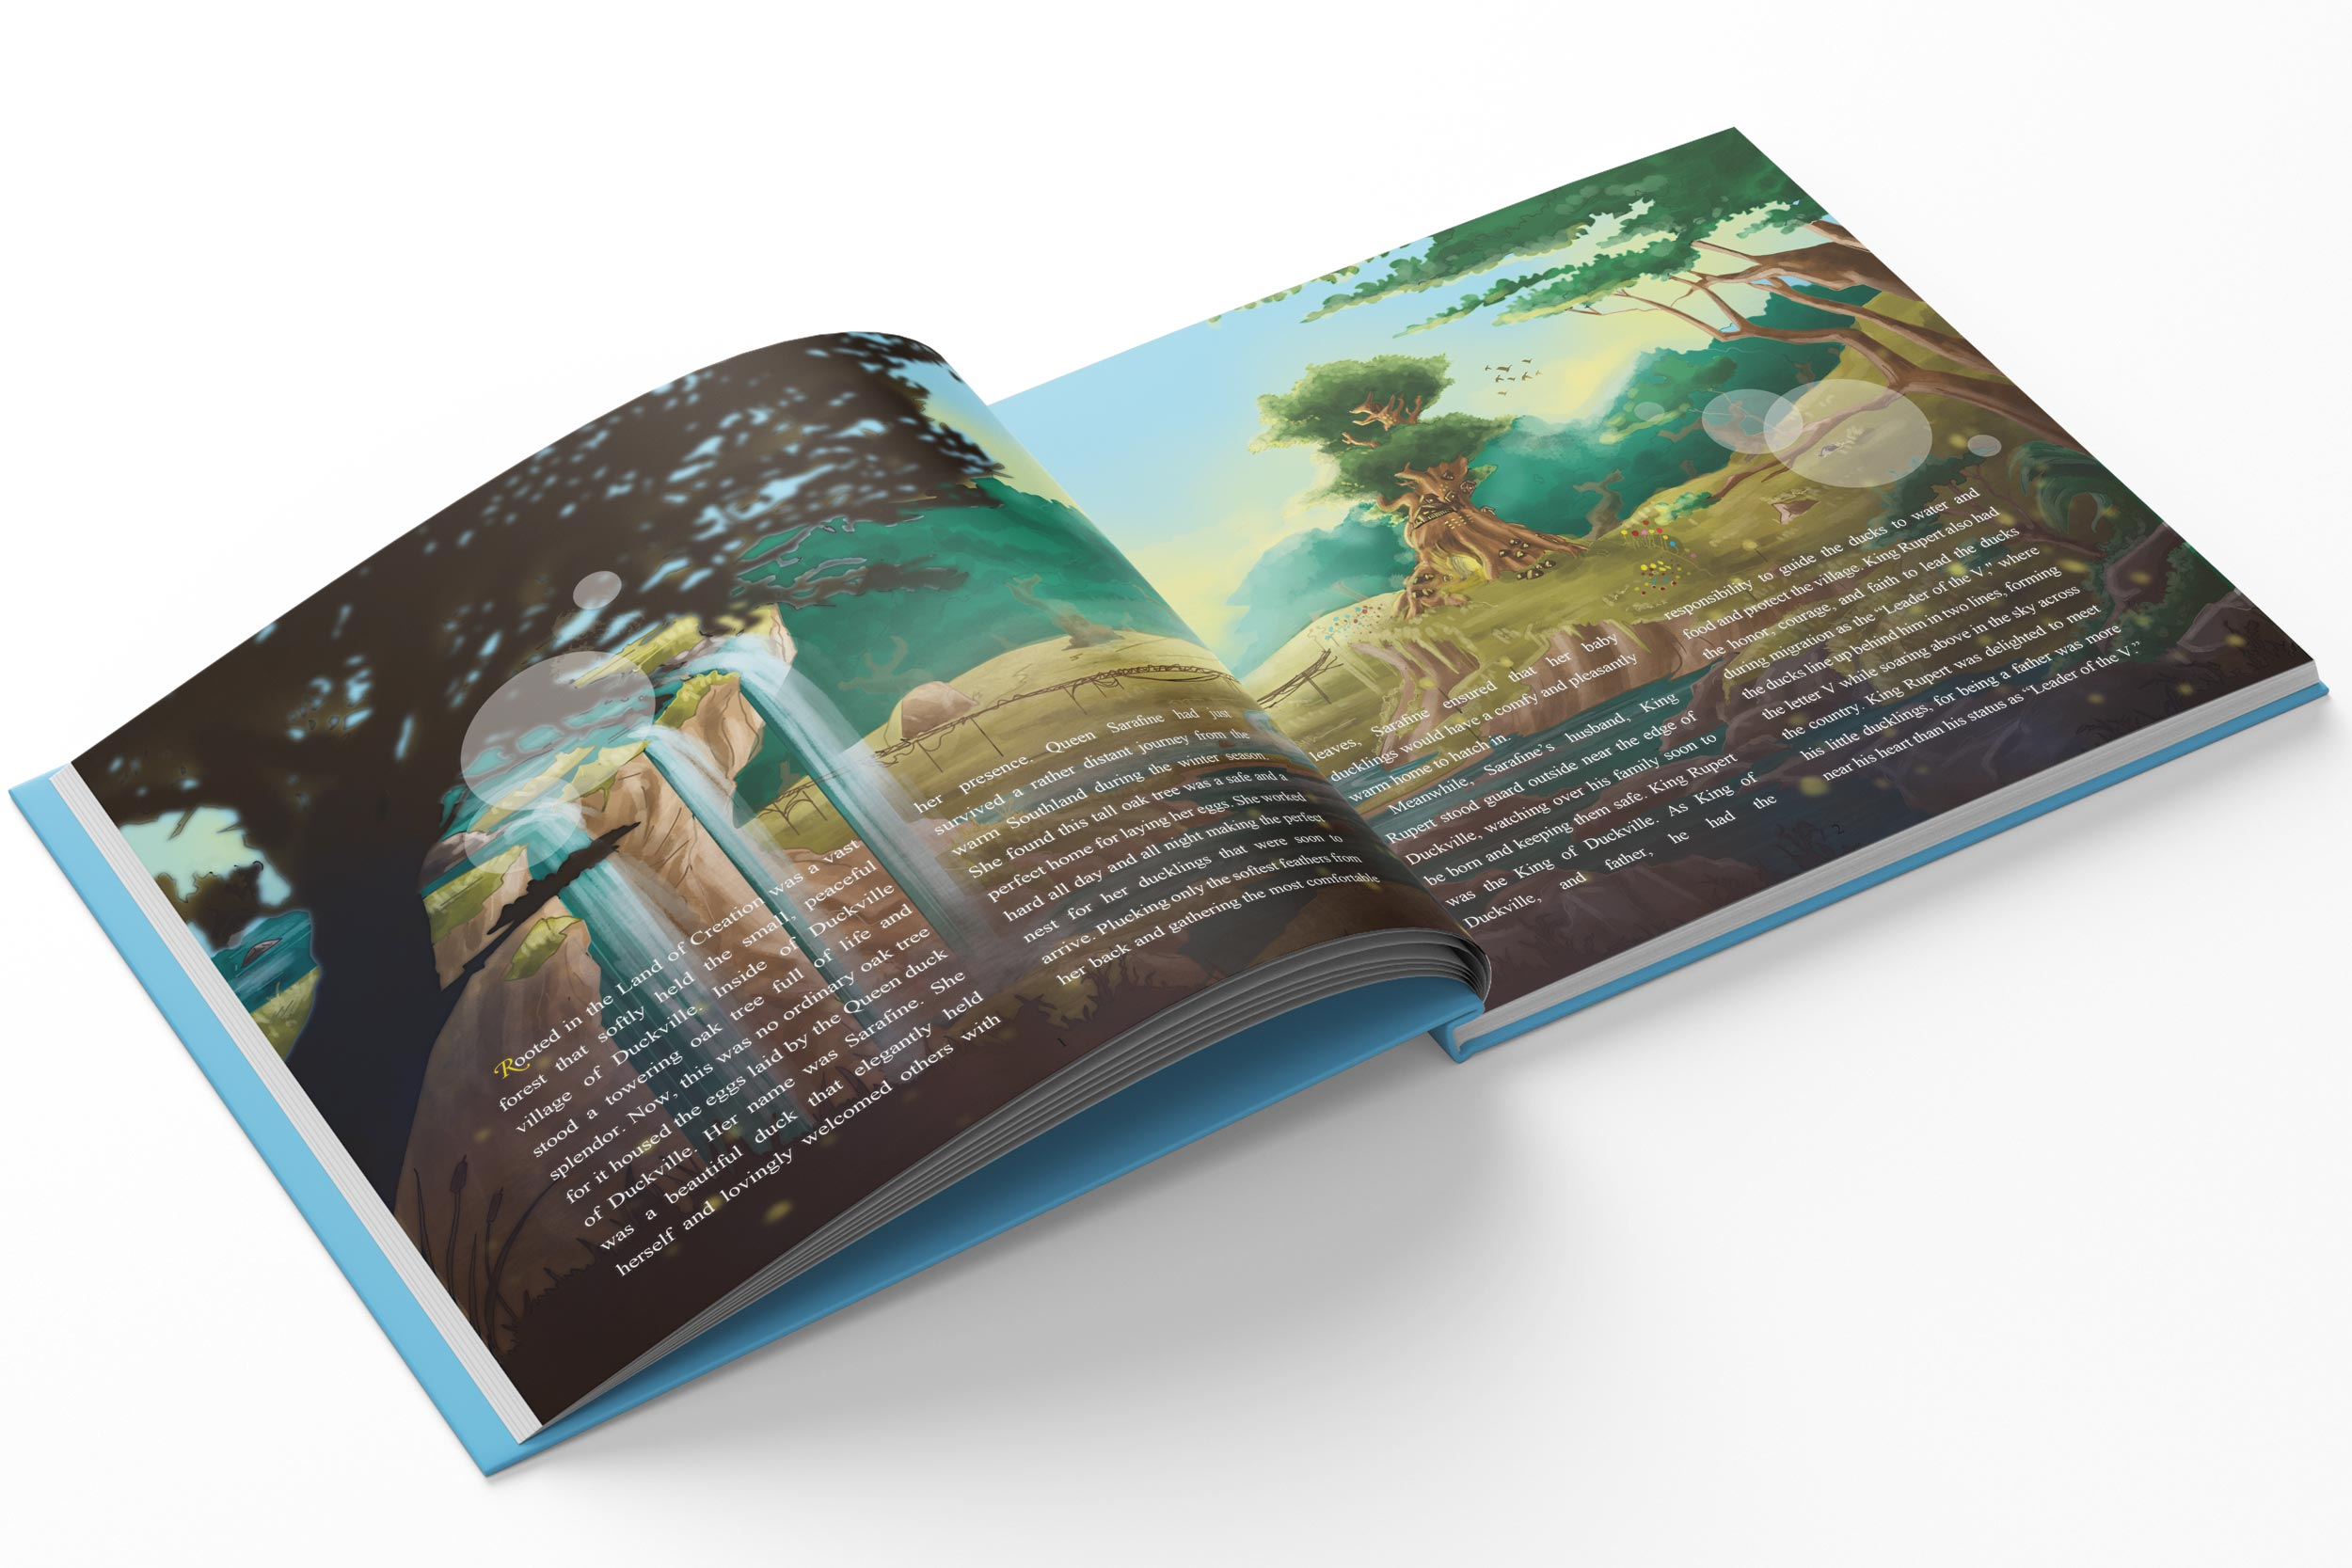 journey-of-puddle-christian-illustrated-children-books-book-1-look-inside-page-1.jpg